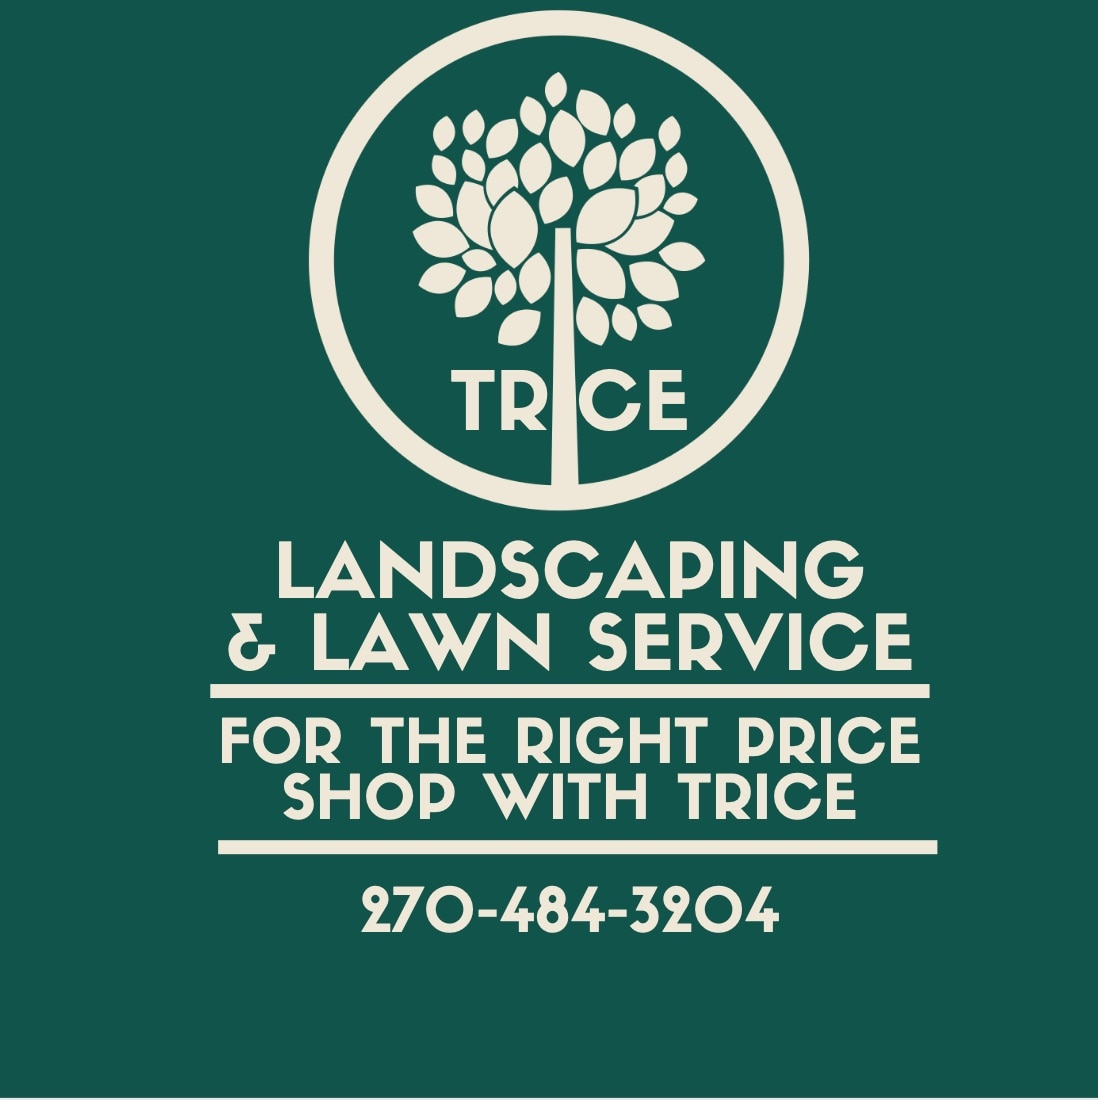 Trice Landscaping and Lawn service